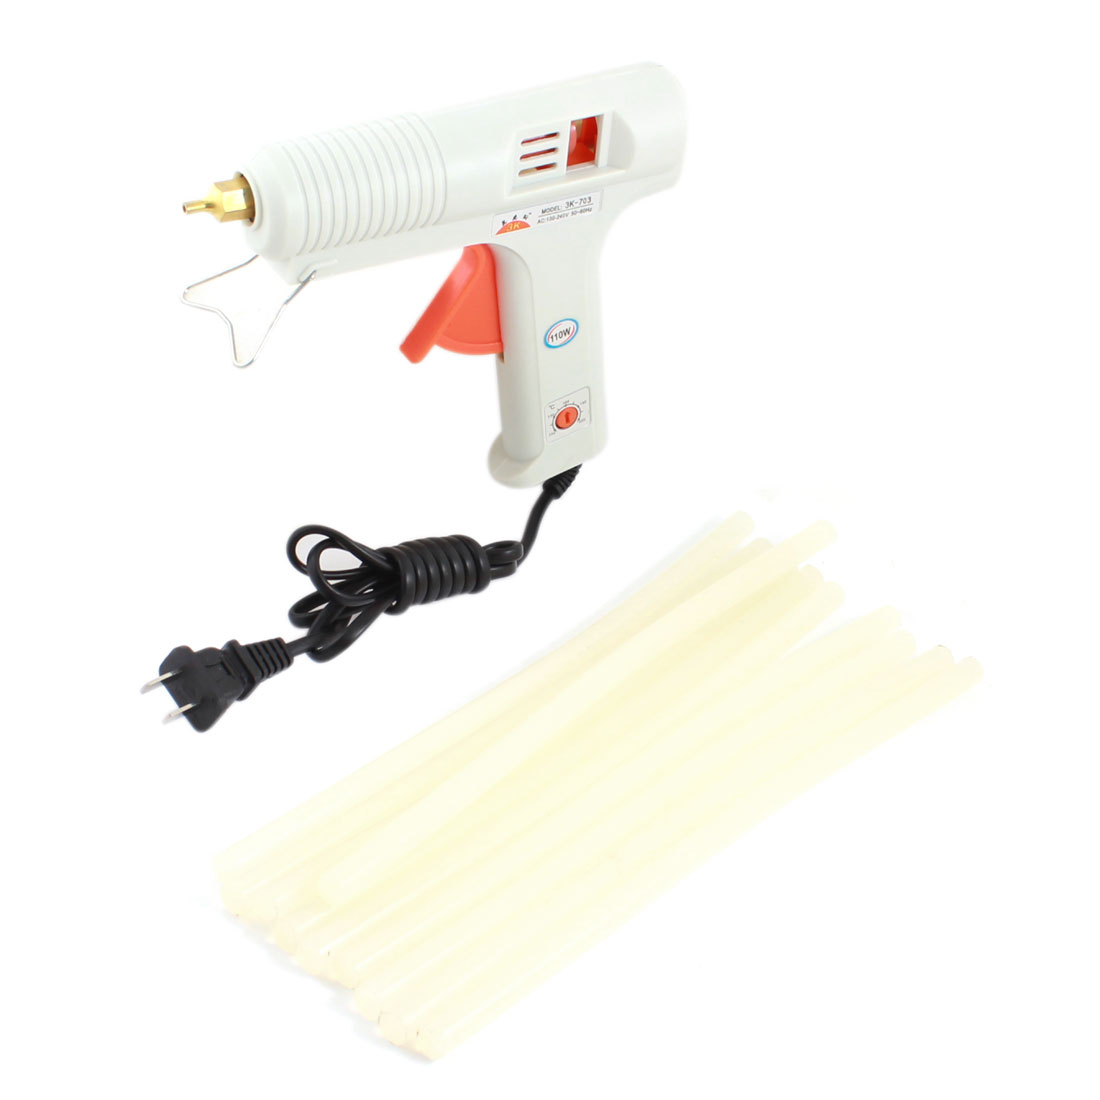 AC100V-240V US Plug Plastic Shell Arts Craft Crafting 110W Gray Glue Gun + 10Pcs 11x300mm Hot Melt Adhesive Sticks